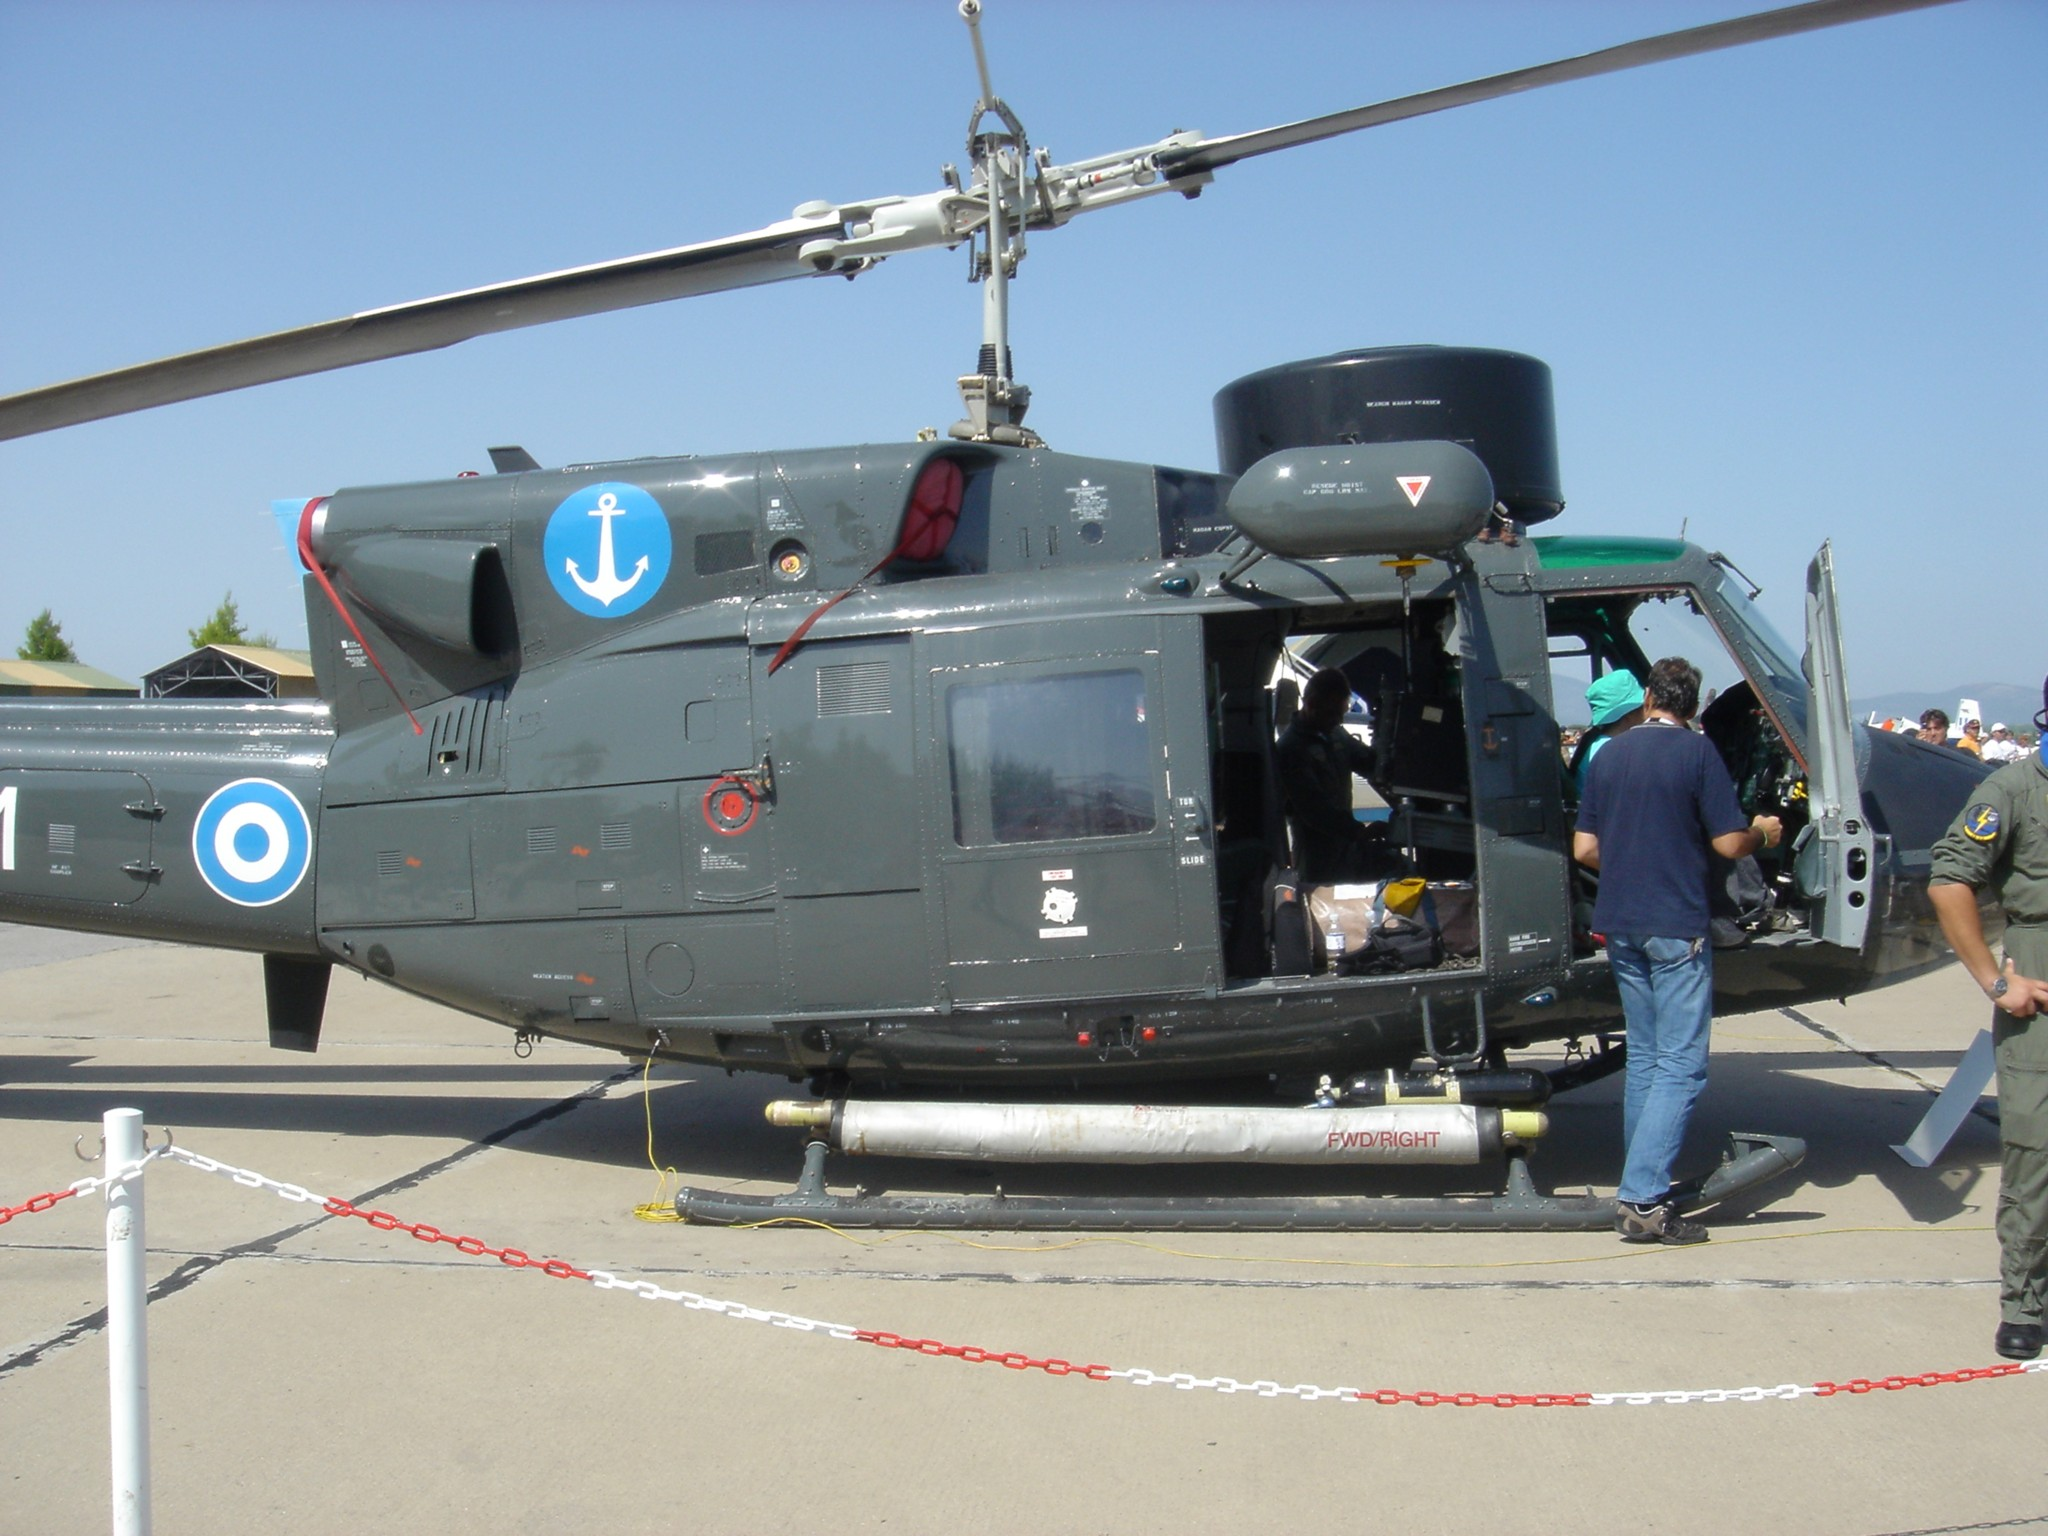 helicopter in afghanistan with File Hellenic Navy Ab 212 Asw  1 on File Hellenic Navy AB 212 ASW  1 in addition Pumachinook And Serendipity in addition Pokhara Helicopter Sightseeing moreover File An Afghan Air Force Mi 17 landing at Forward Operating Base Fenty in 2011 also 8712296285.